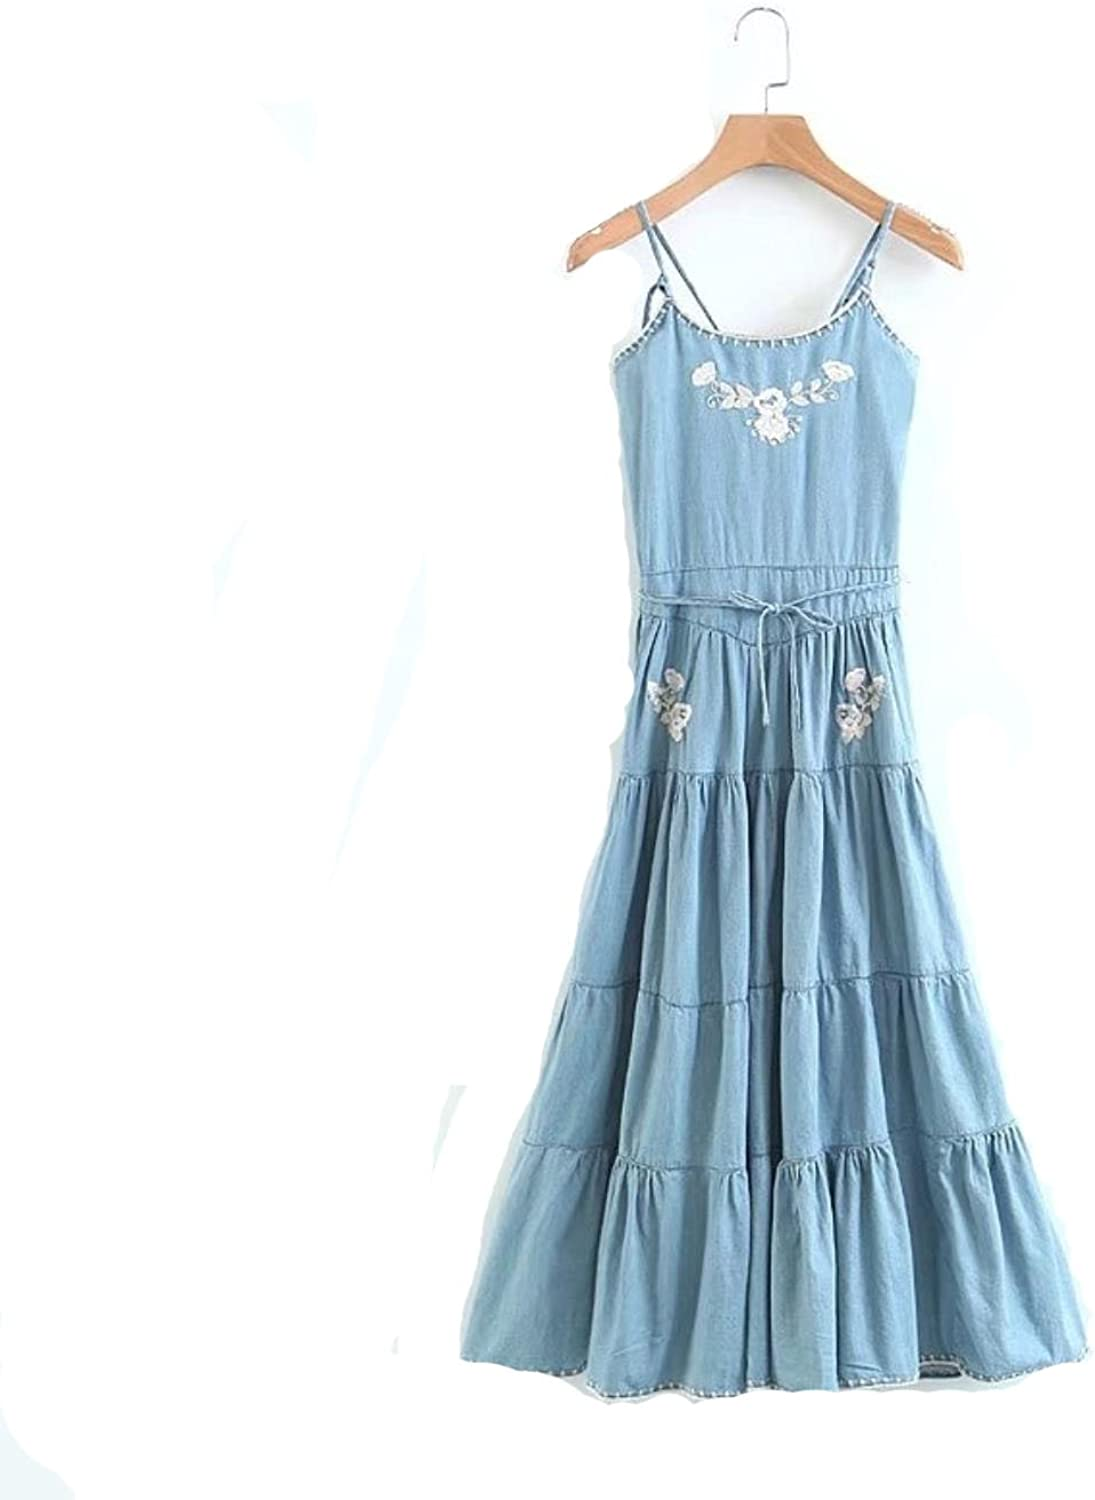 BAezRkkX Women Flower Embroidery Halter Big Swing Dress Summer Casual Washed Denim Dresses